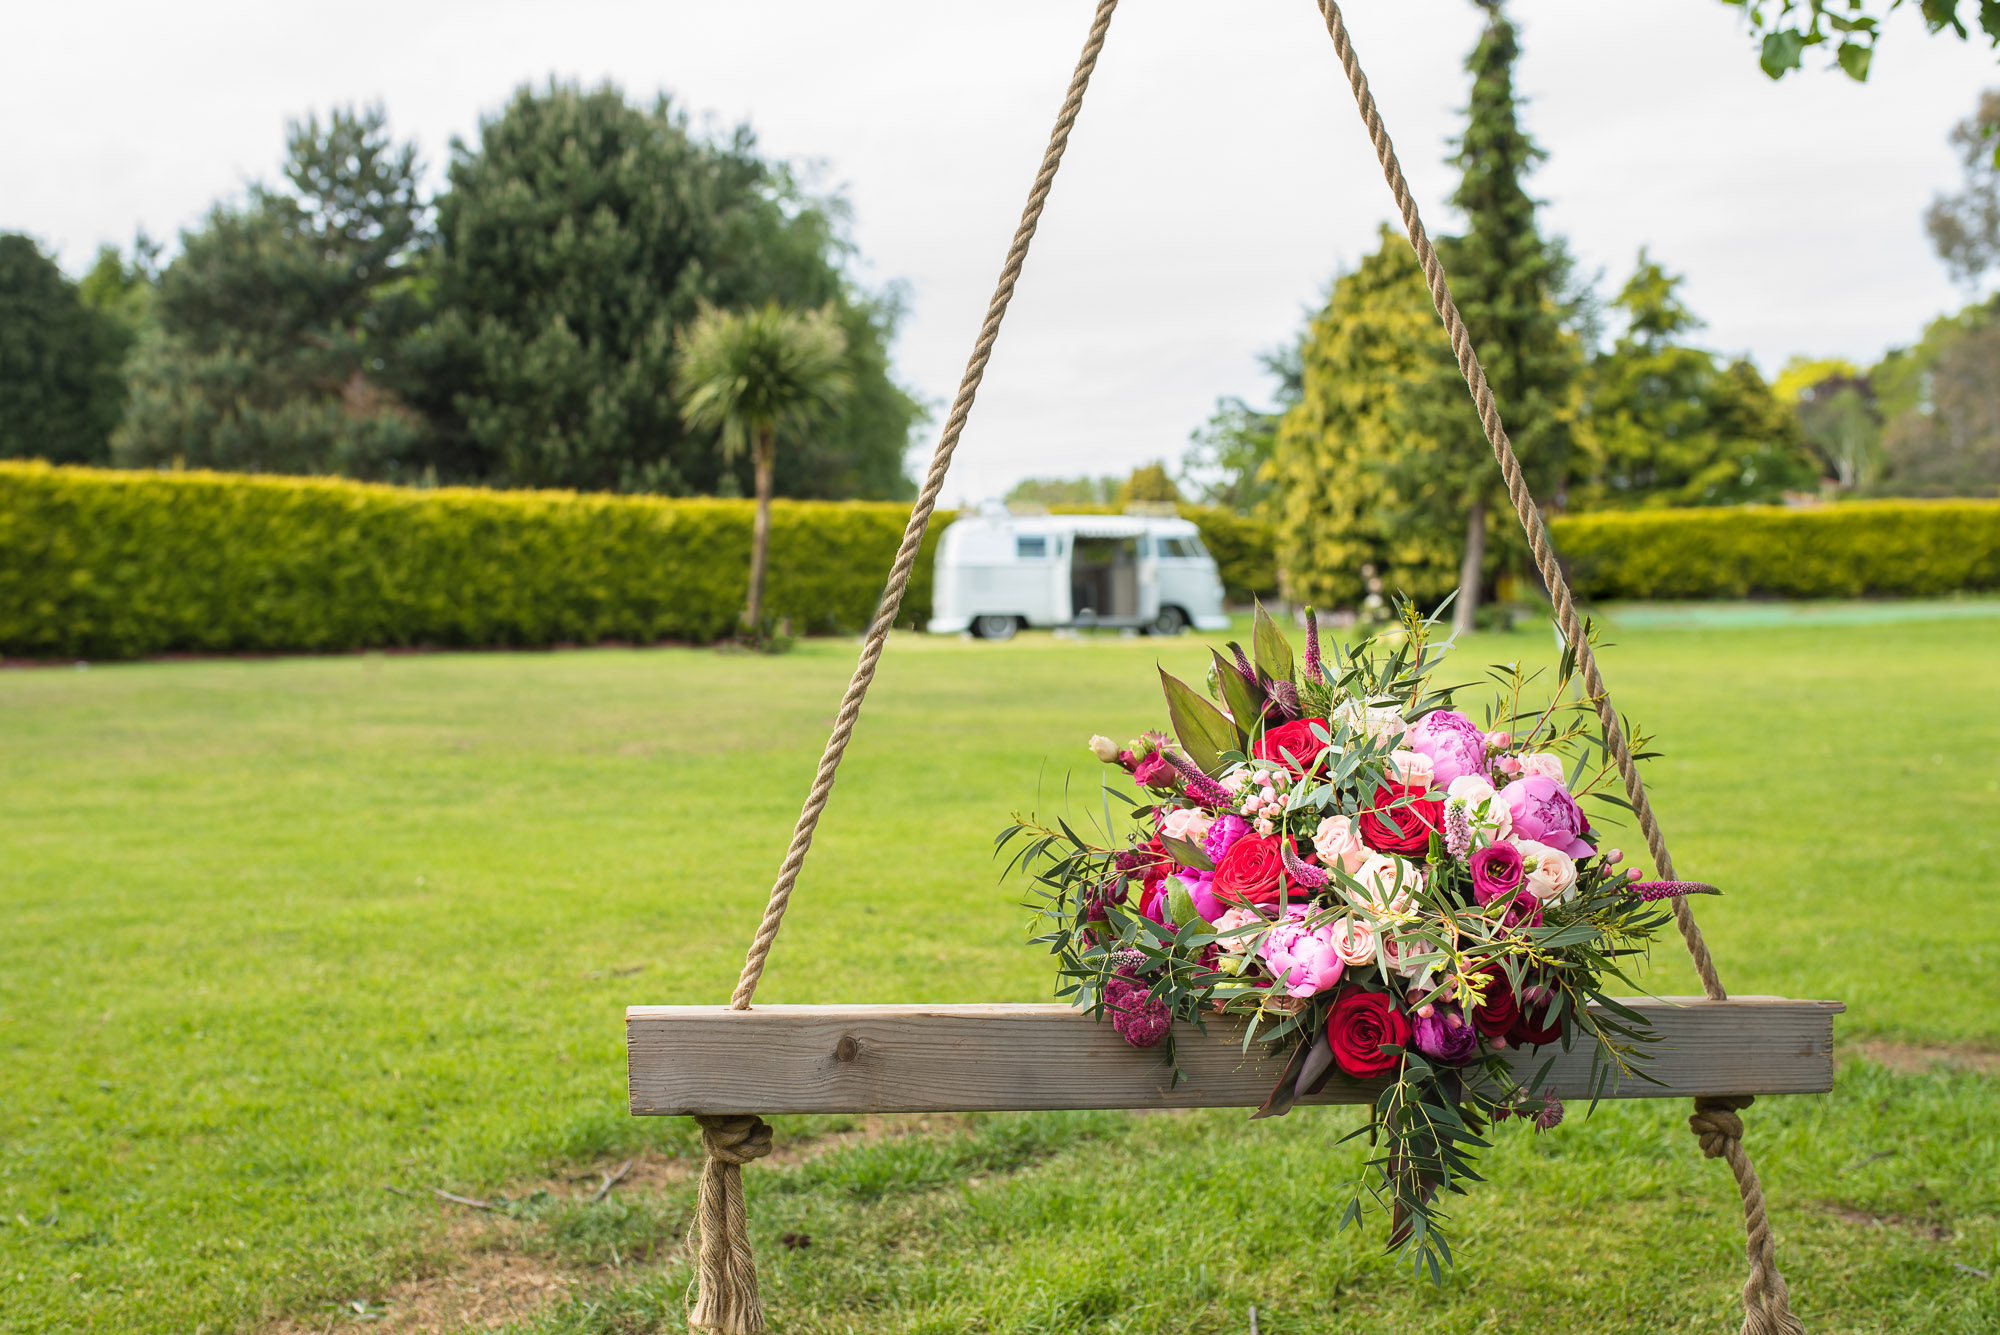 Bouquet and Camper Van